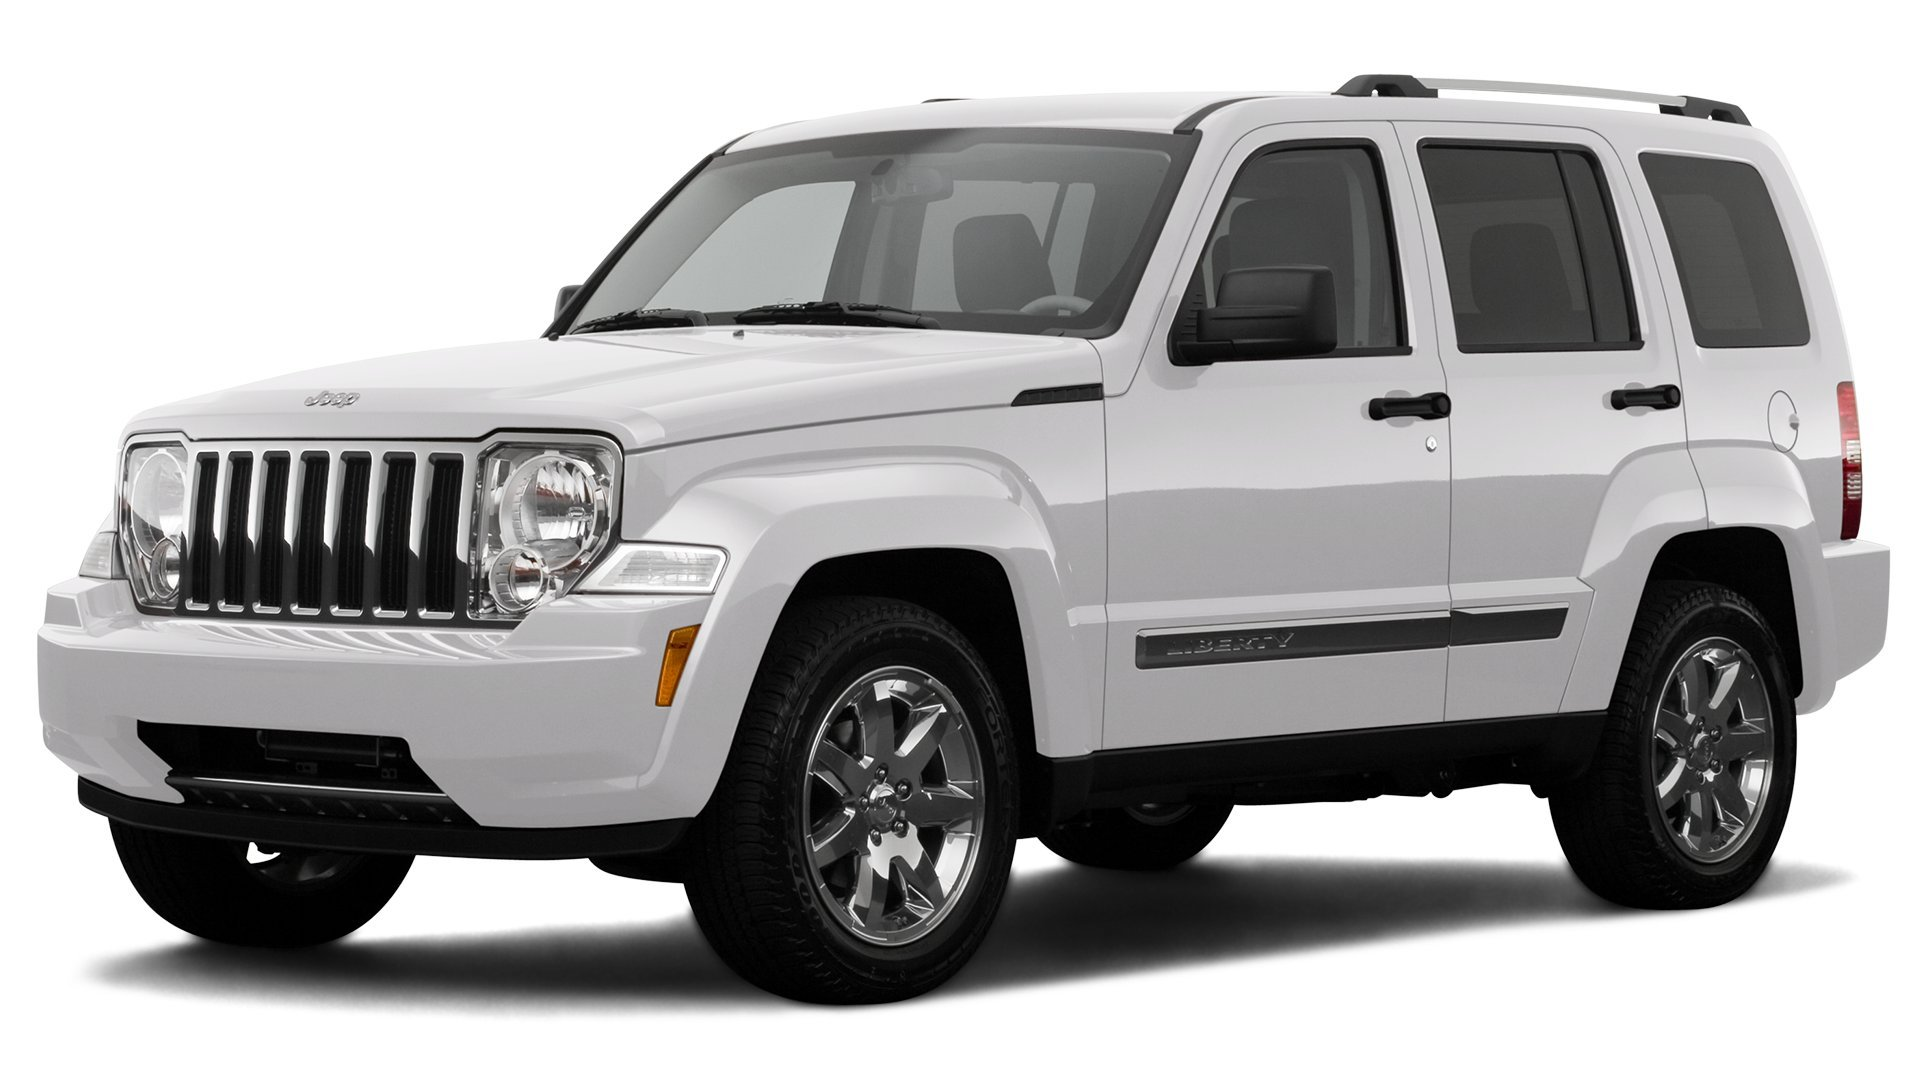 2008 jeep liberty reviews images and specs. Black Bedroom Furniture Sets. Home Design Ideas